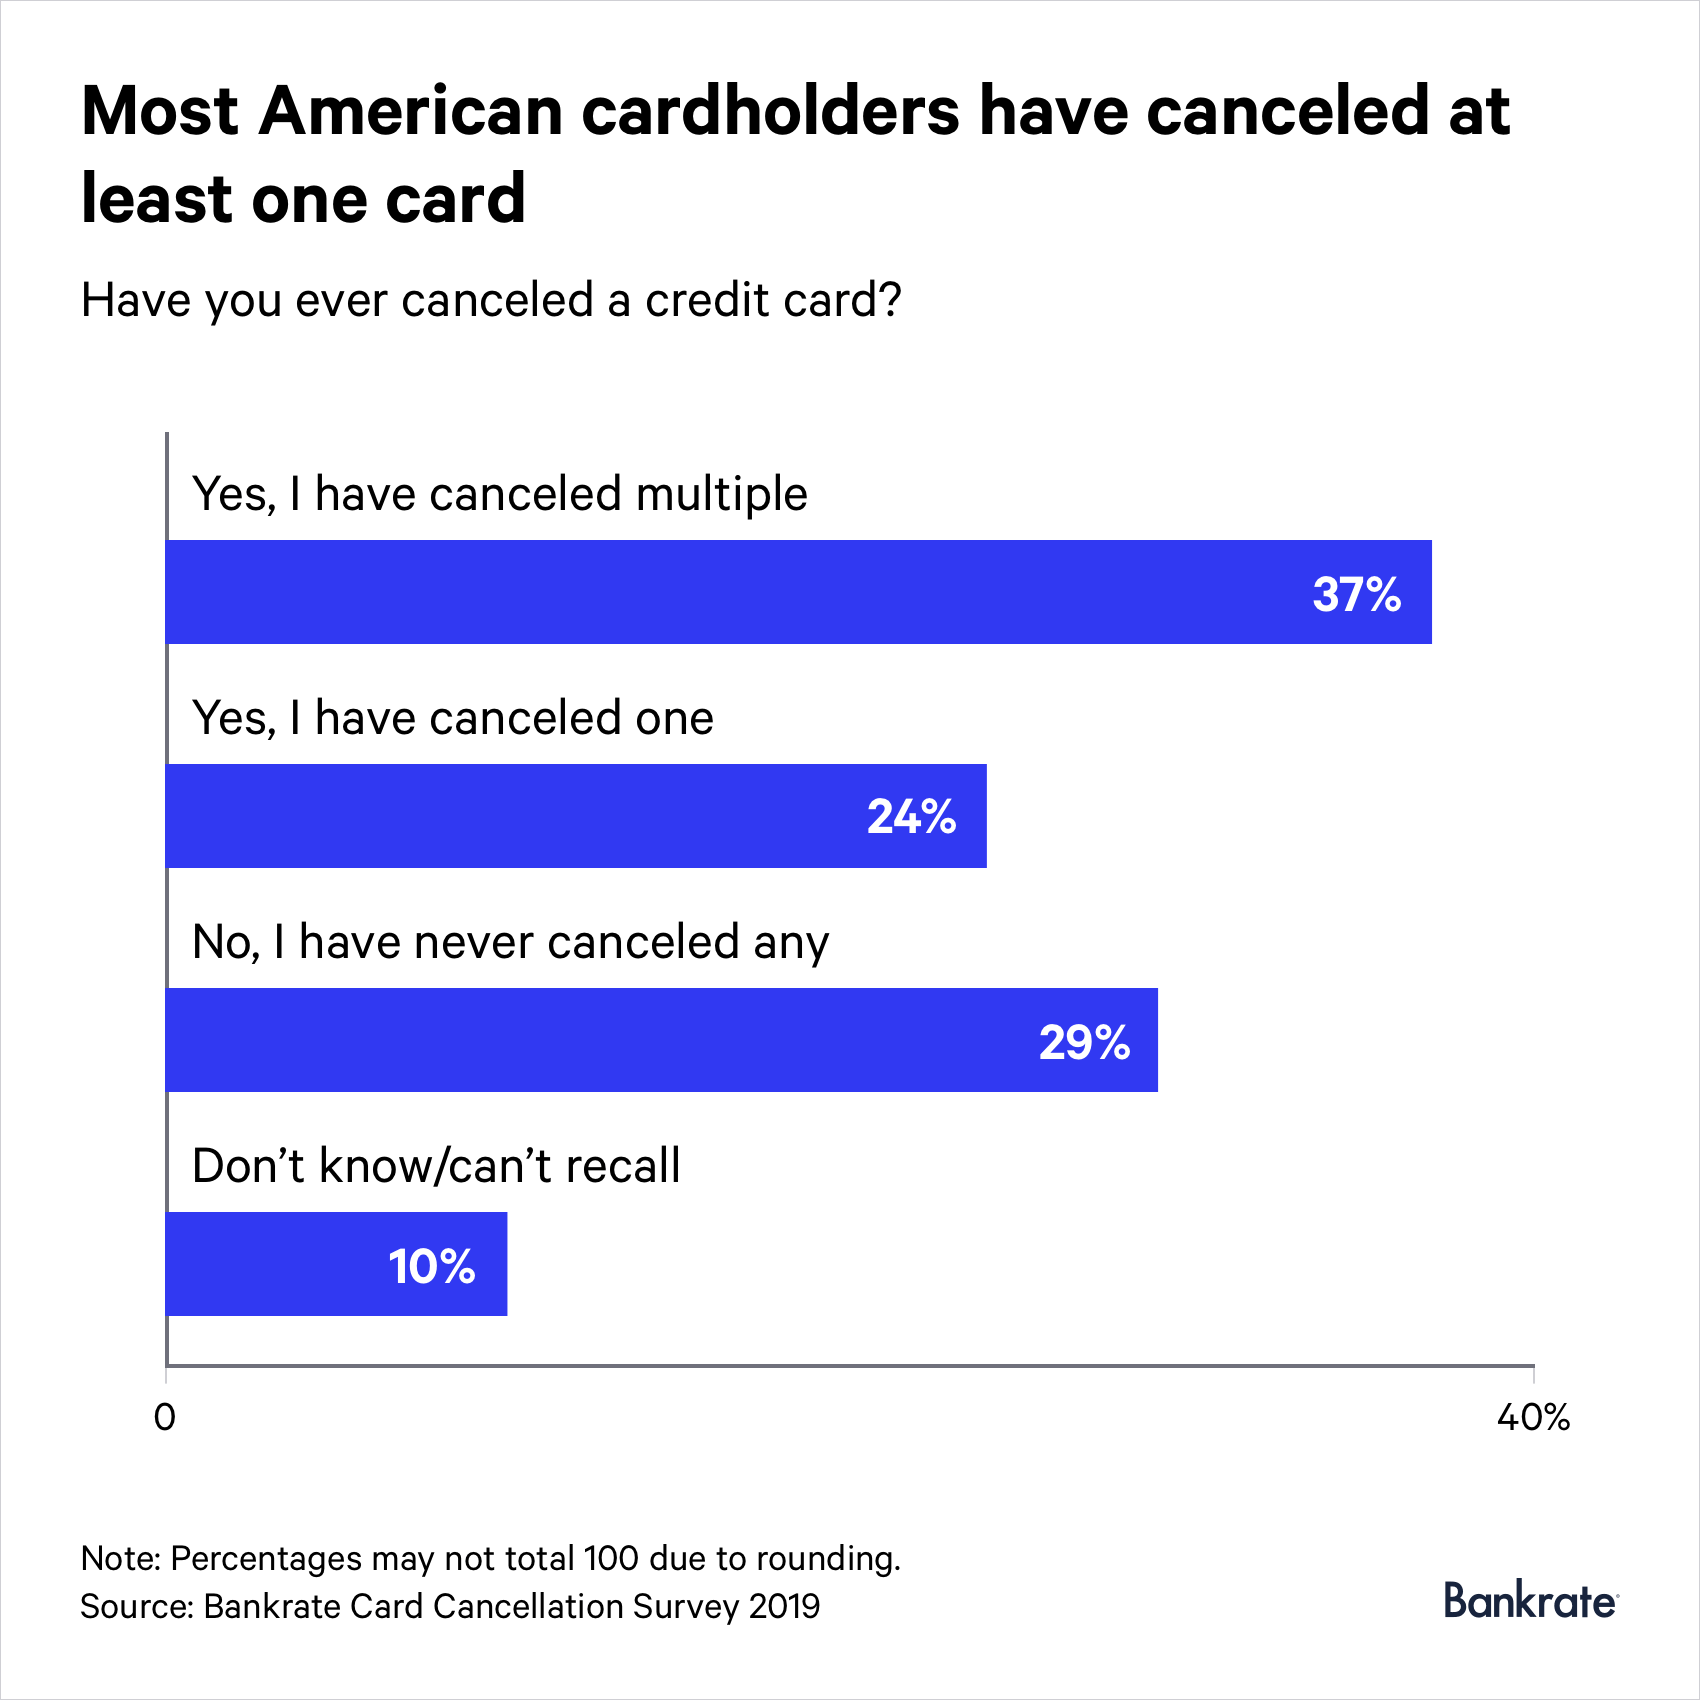 37% of respondents answered that they have canceled multiple cards